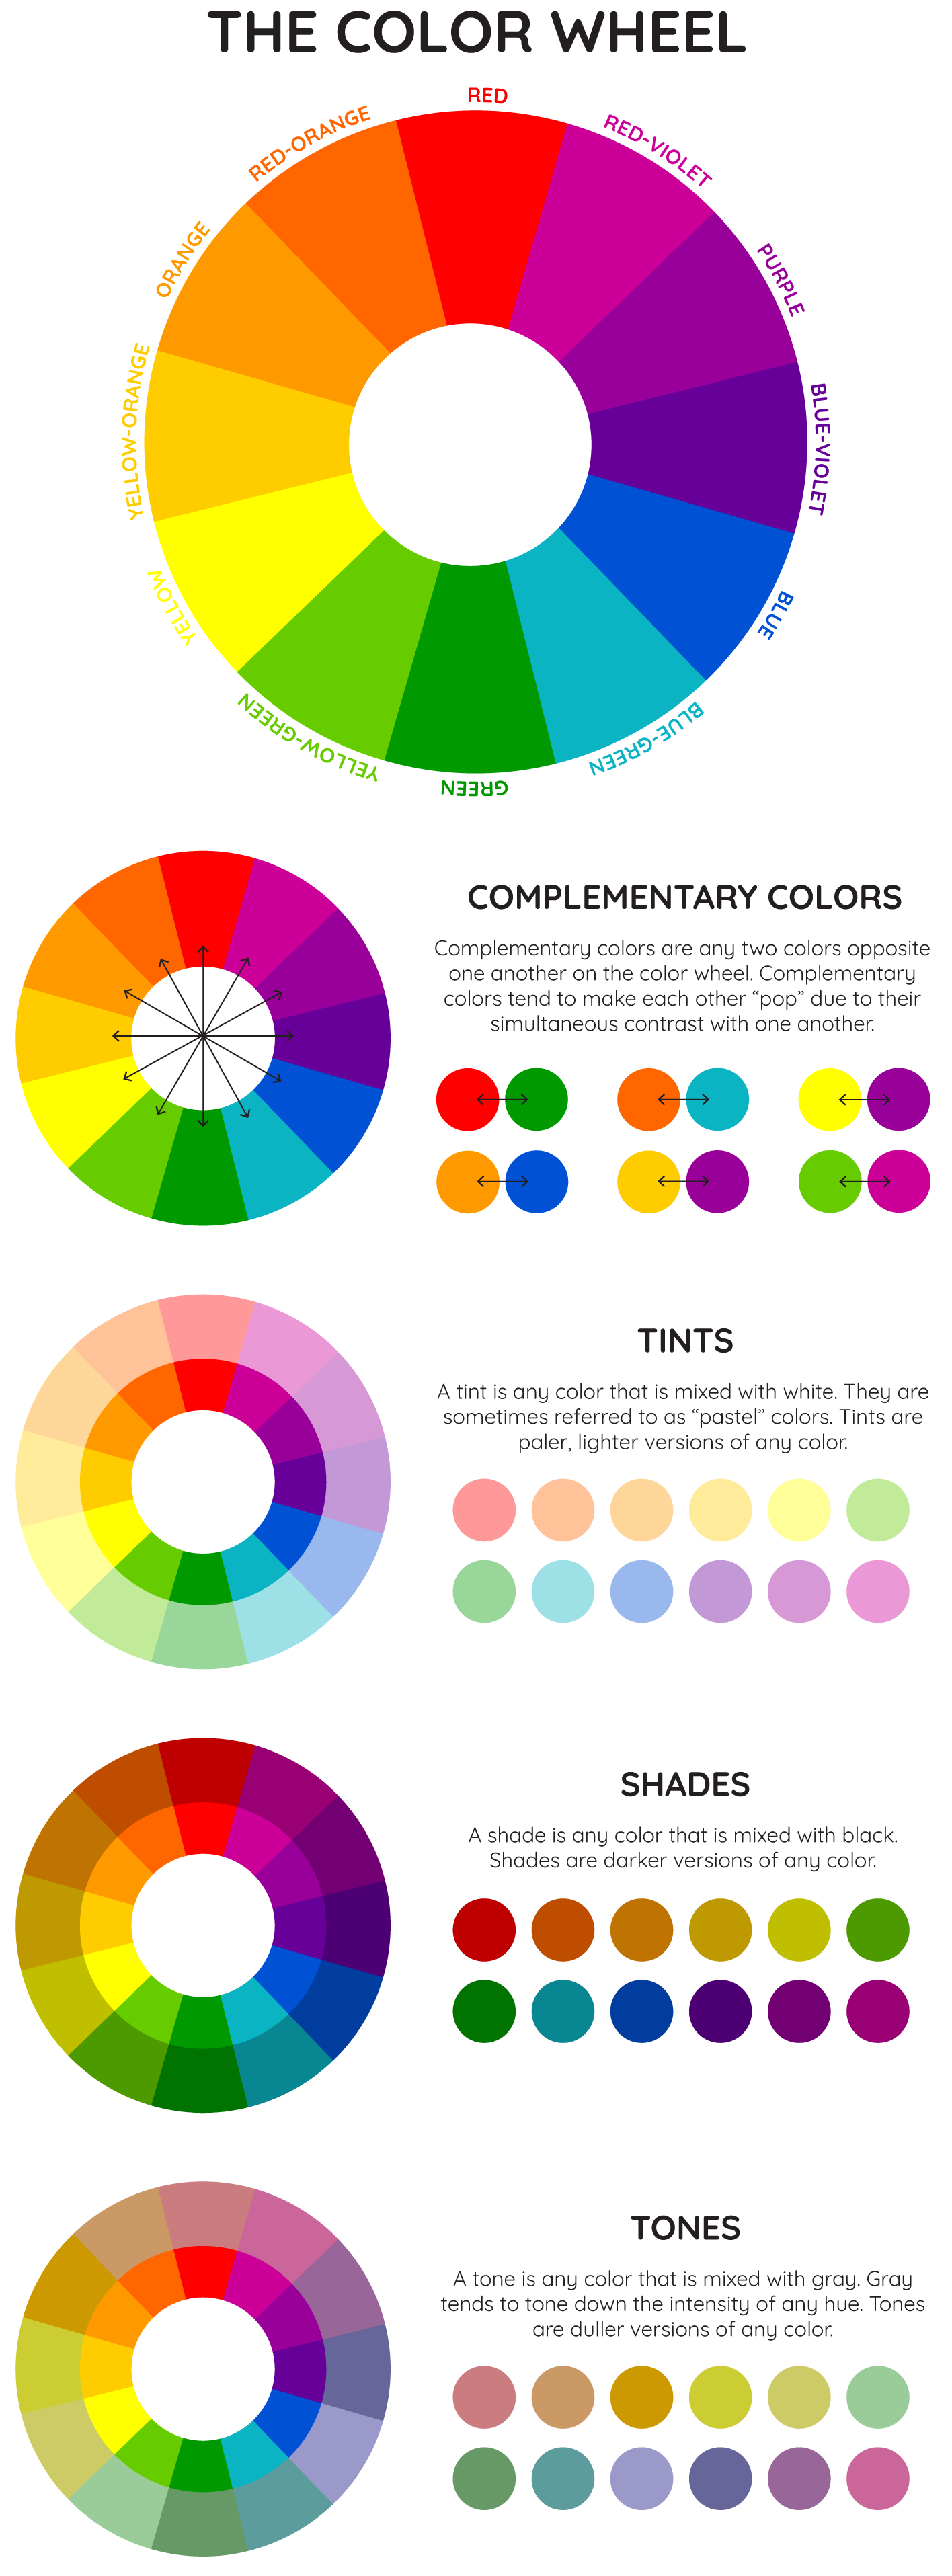 Color psychology in the workplace: The Color Wheel